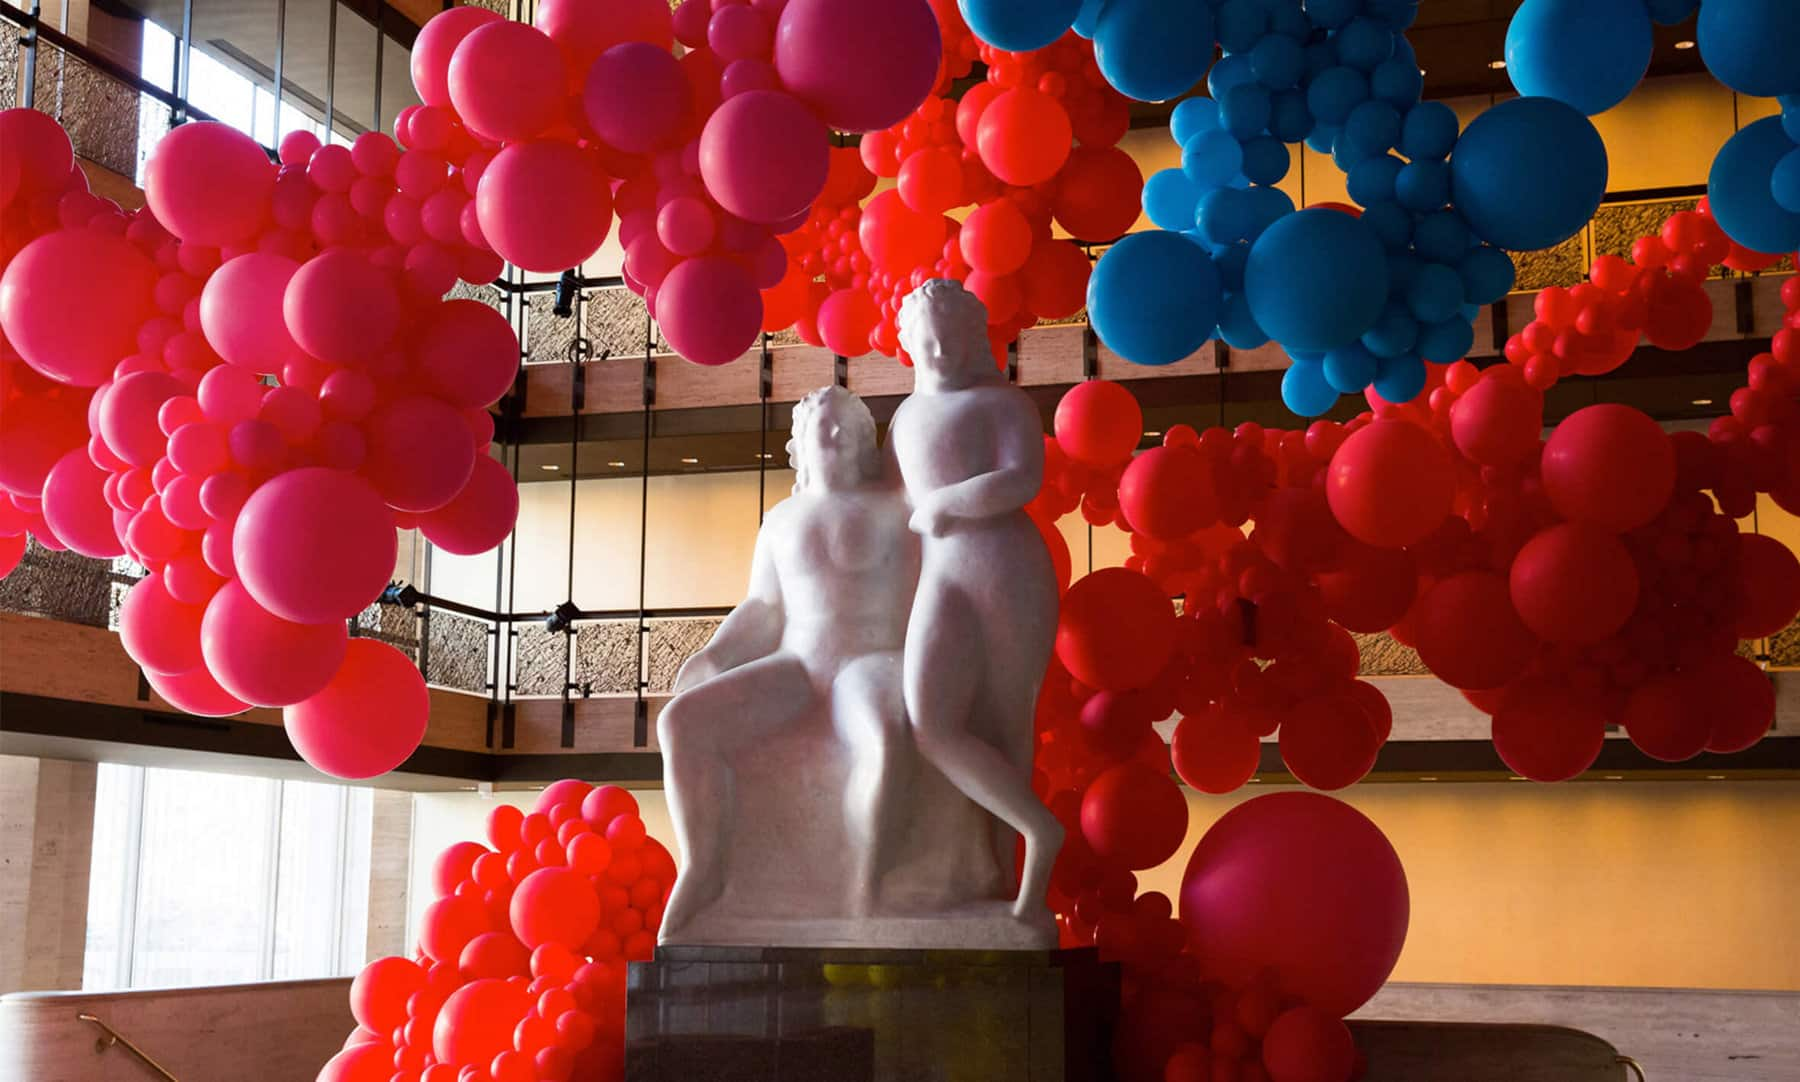 A color photo of Geronimo's balloon sculptures inside Lincoln Center for the New York City Ballet's 2018 Art Series.